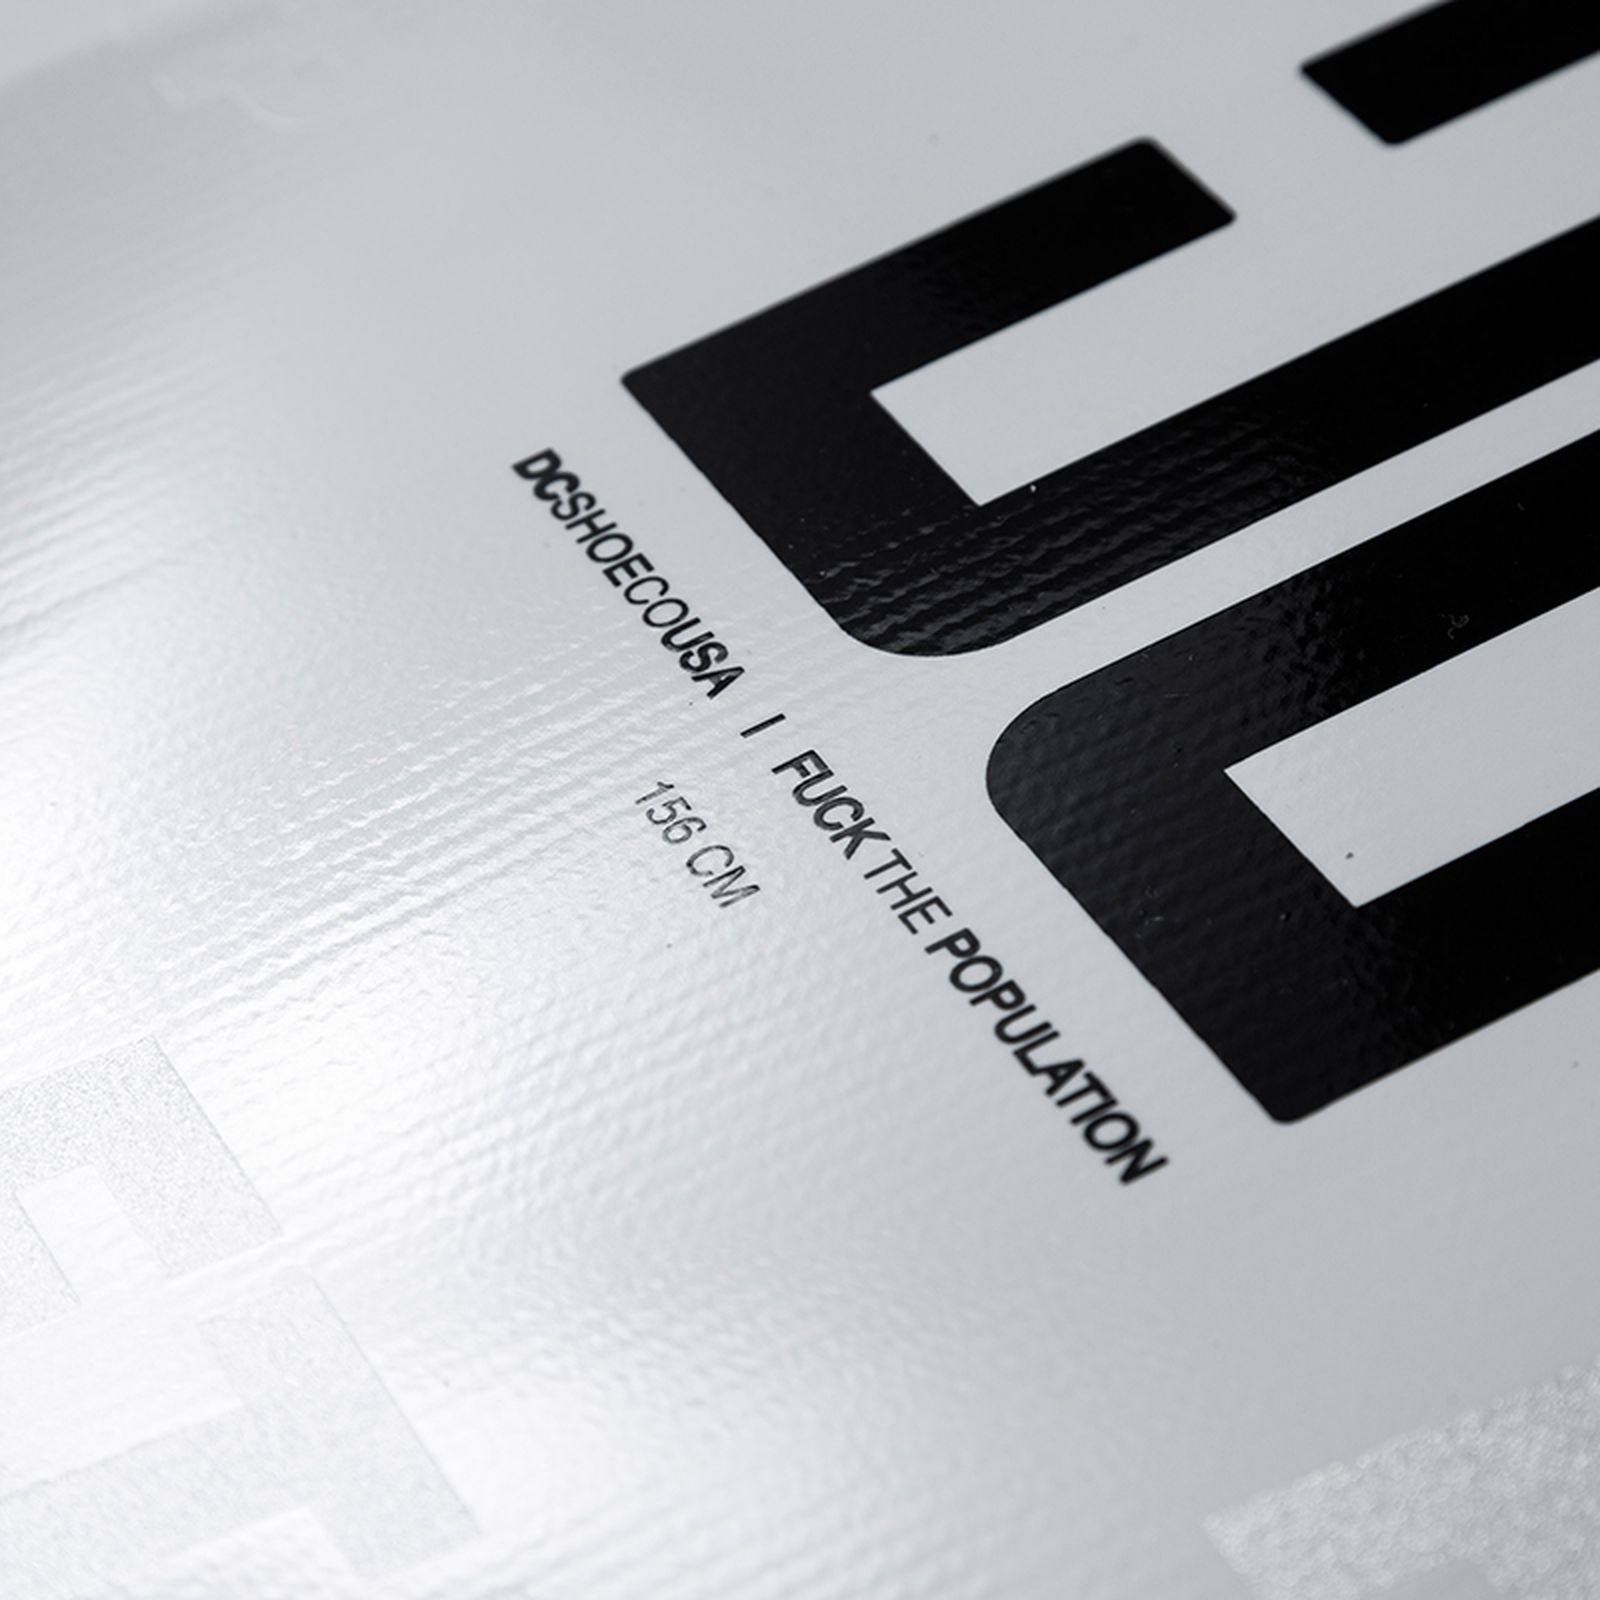 dc ftp snow collection 1 dc shoes fuckthepopulation